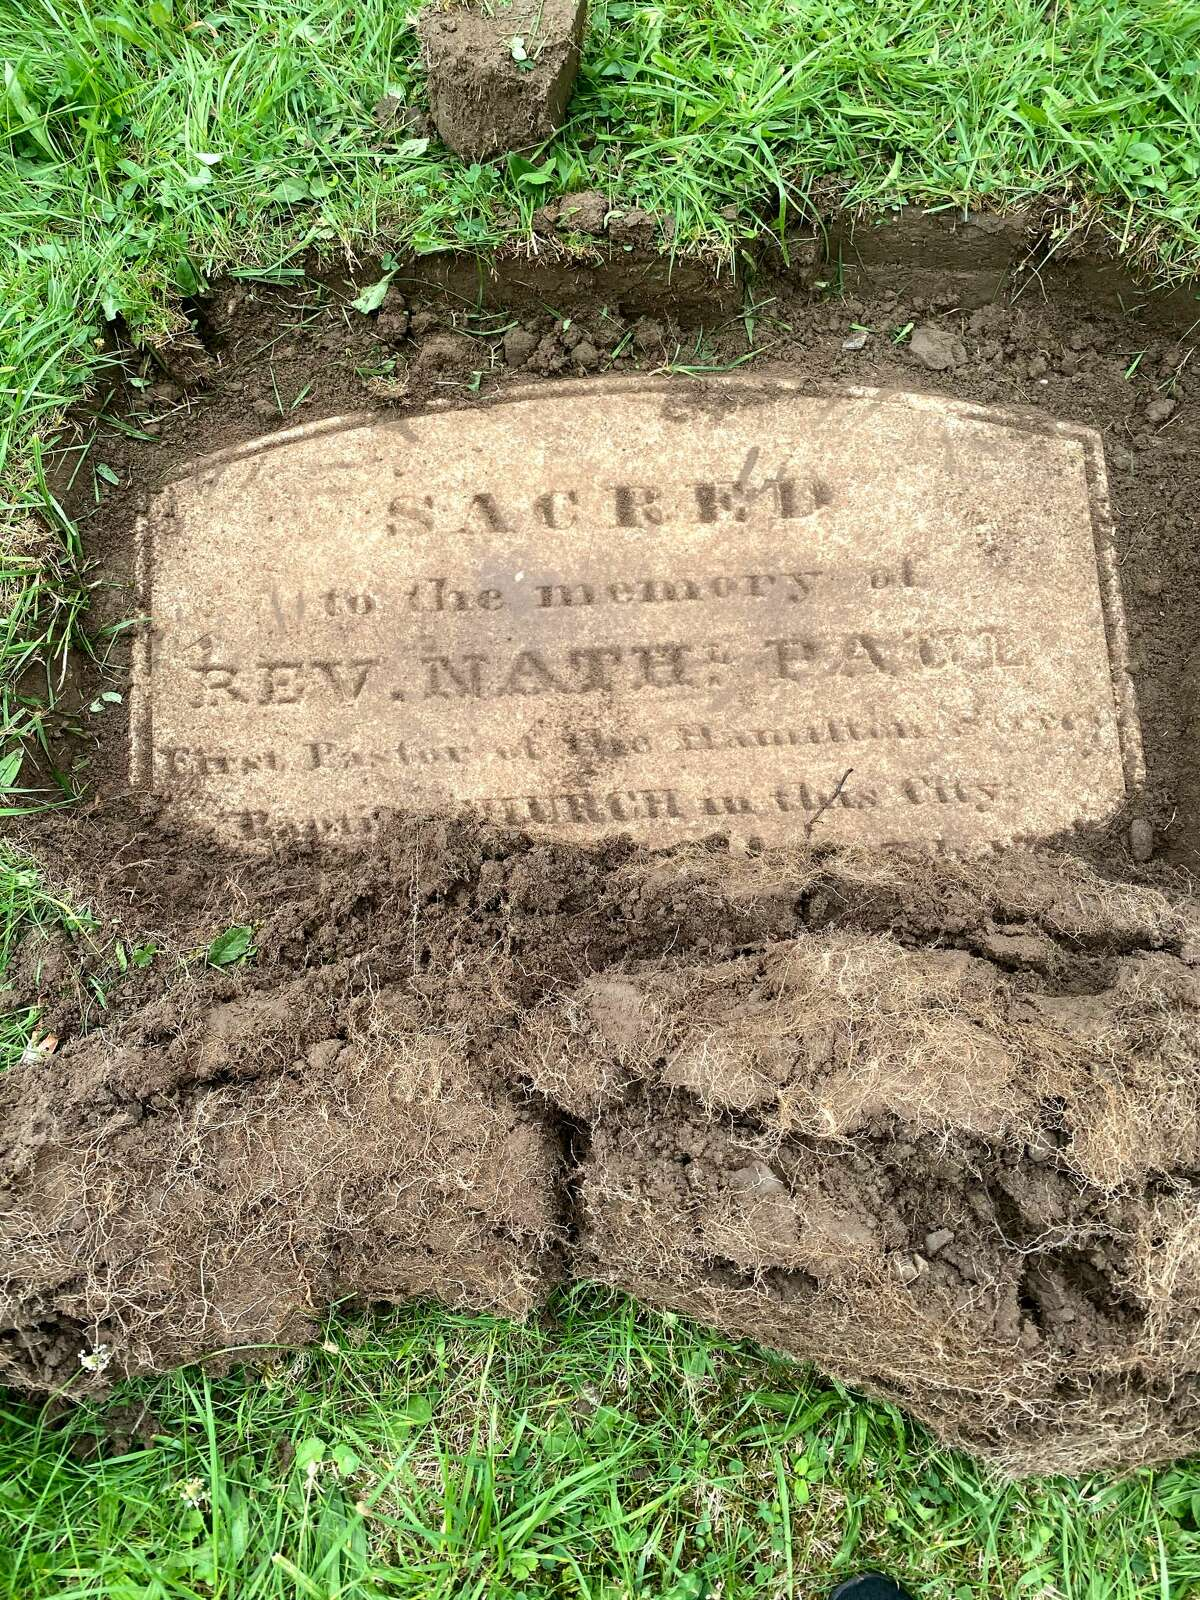 Part of the gravestone for the Rev. Nathaniel Paul, who arrived in Albany in 1820 as the founding pastor of what would become First African Baptist Church. Gravestone restorer Chris White and cemetery historian Paula Lemire unearthed the marker earlier this week in Albany Rural Cemetery in Menands. It is presumed to have been buried for a century or more after  being toppled or falling over. (Provided photo.)